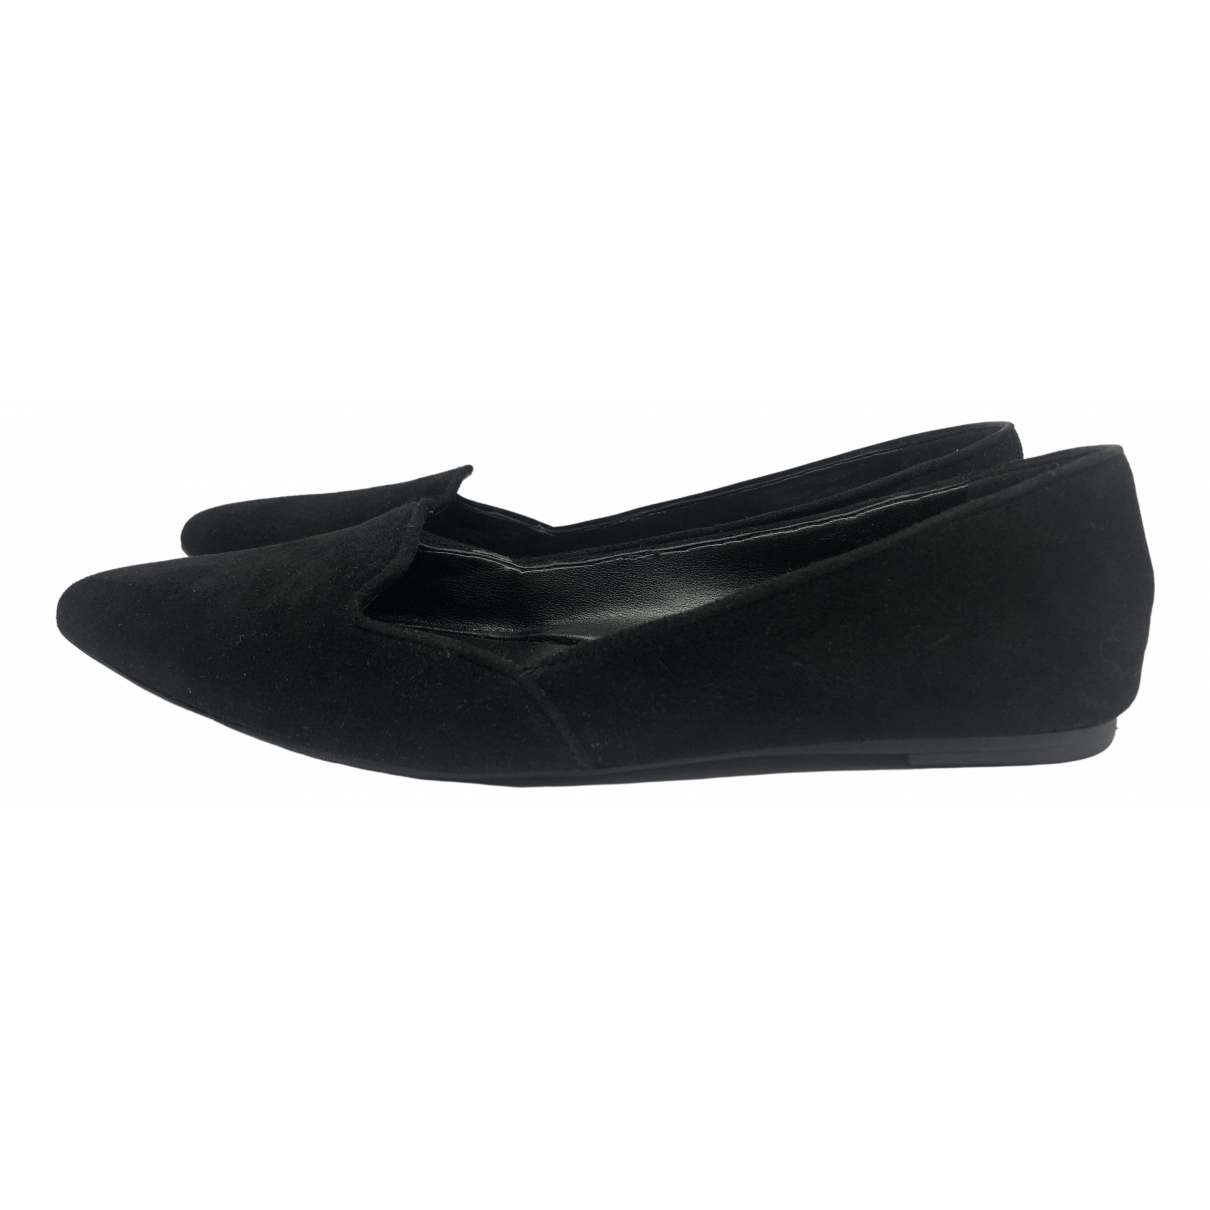 Nine West \N Black Suede Ballet flats for Women 36 EU